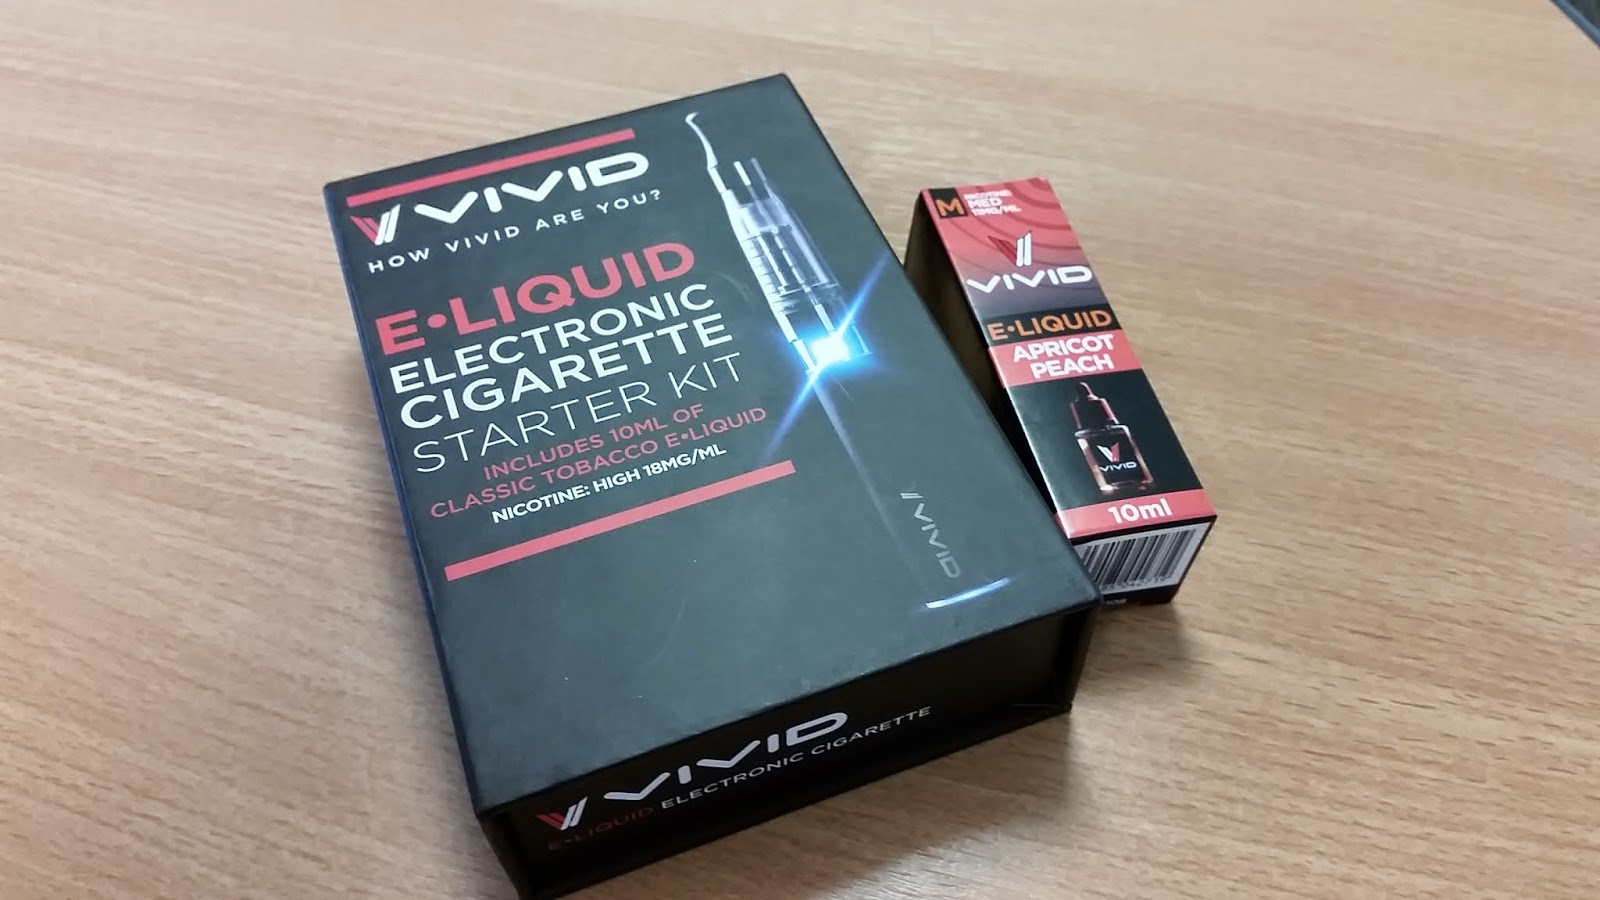 Where can i buy electronic cigarettes in bulk